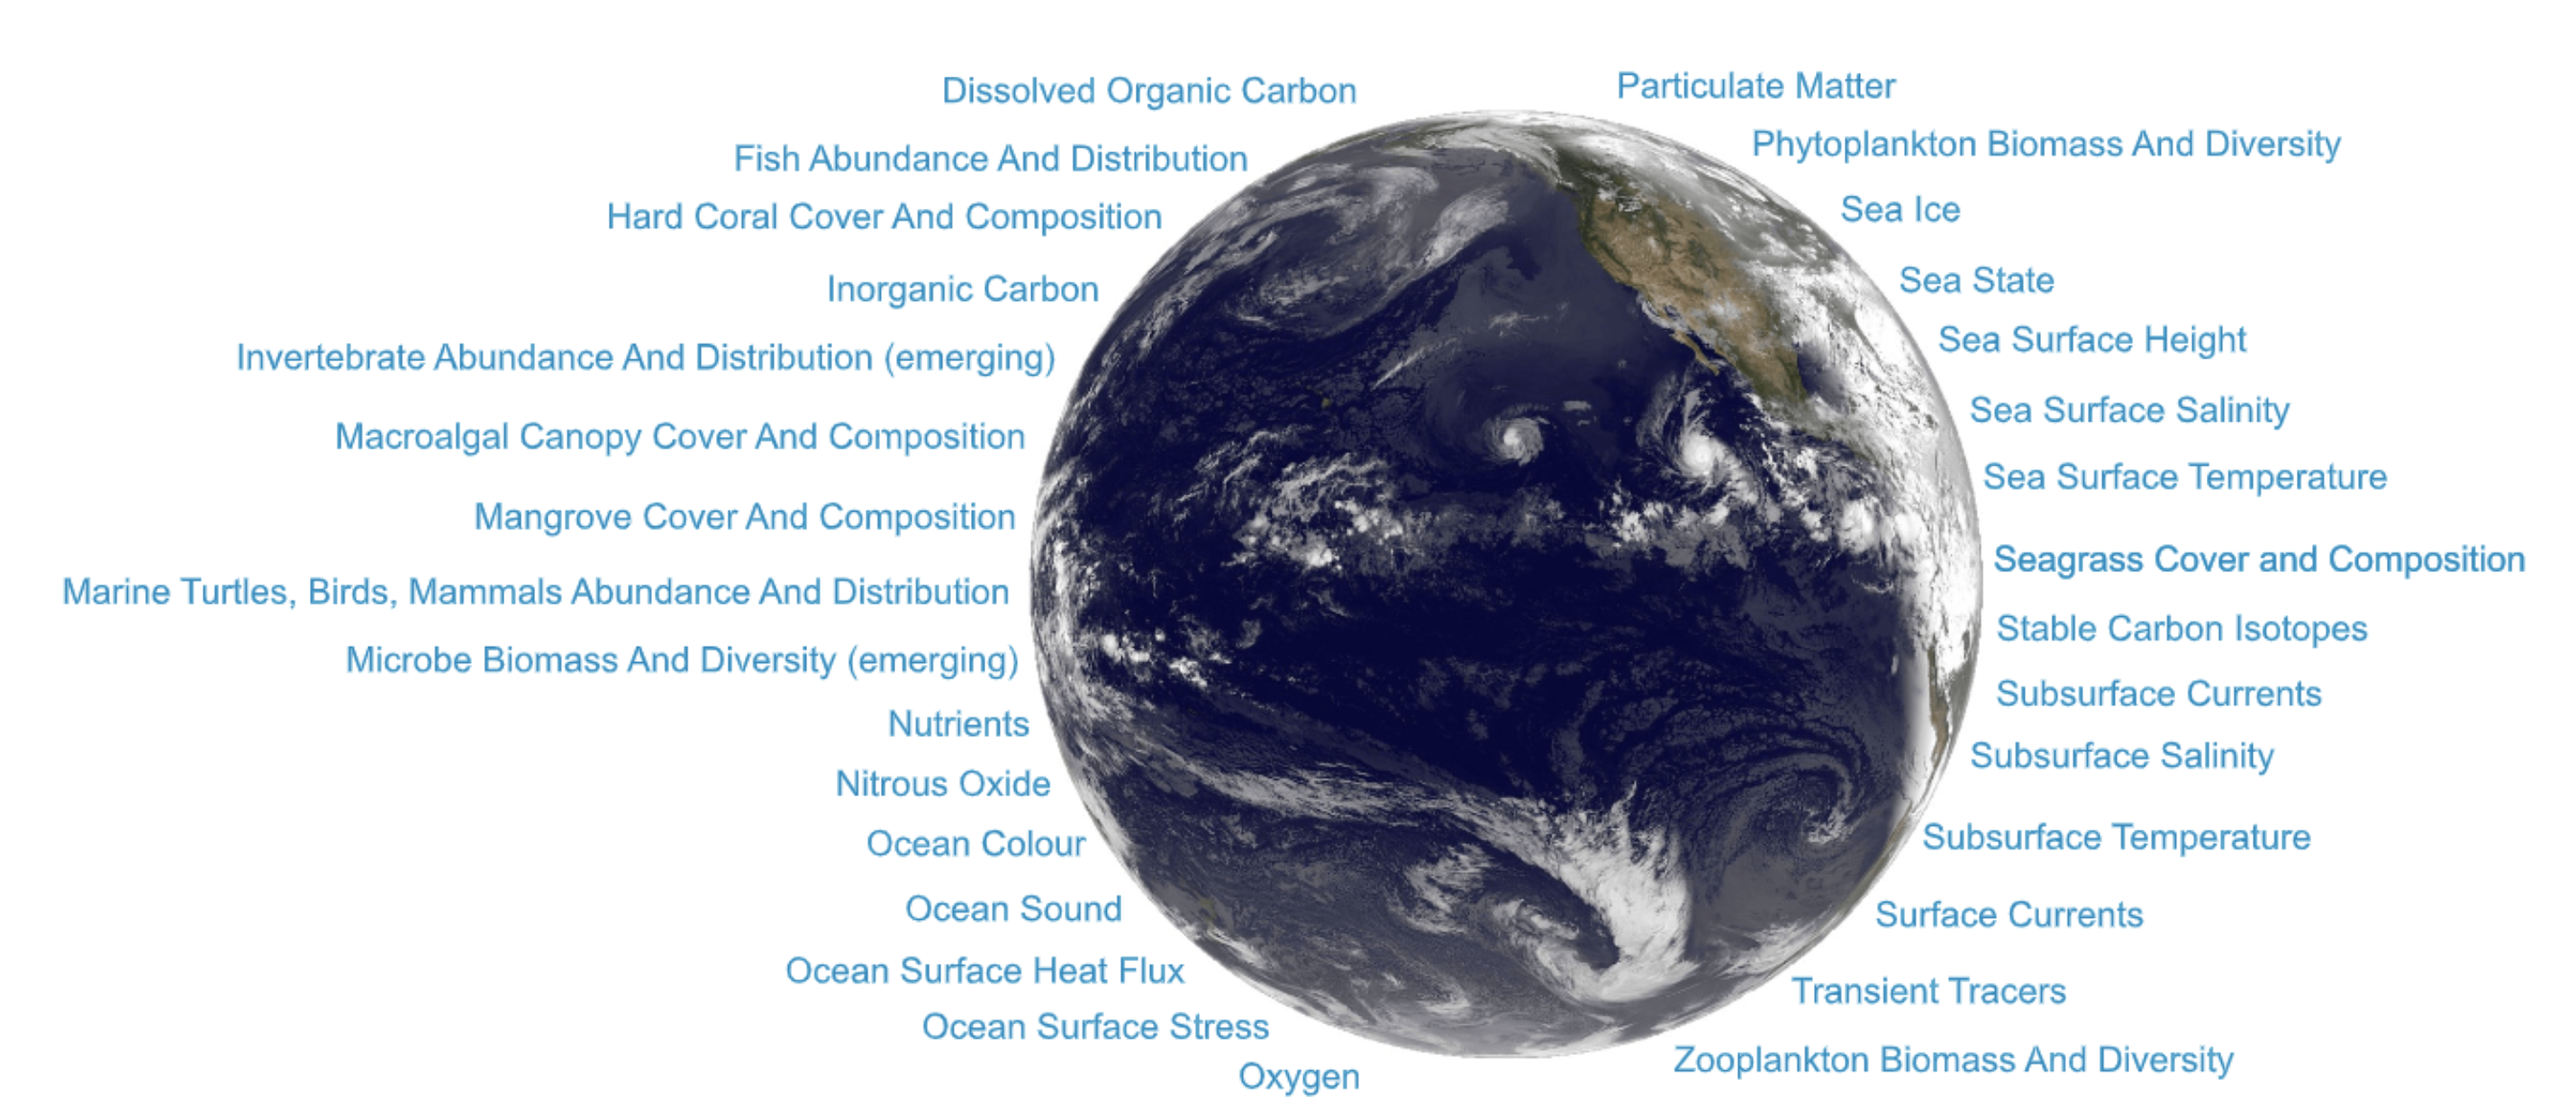 Essential Ocean Variables as defined by the Global Ocean Observing System. EOVs are focused on the physics of the ocean system, the biogeochemistry, and the biology and ecosystems.